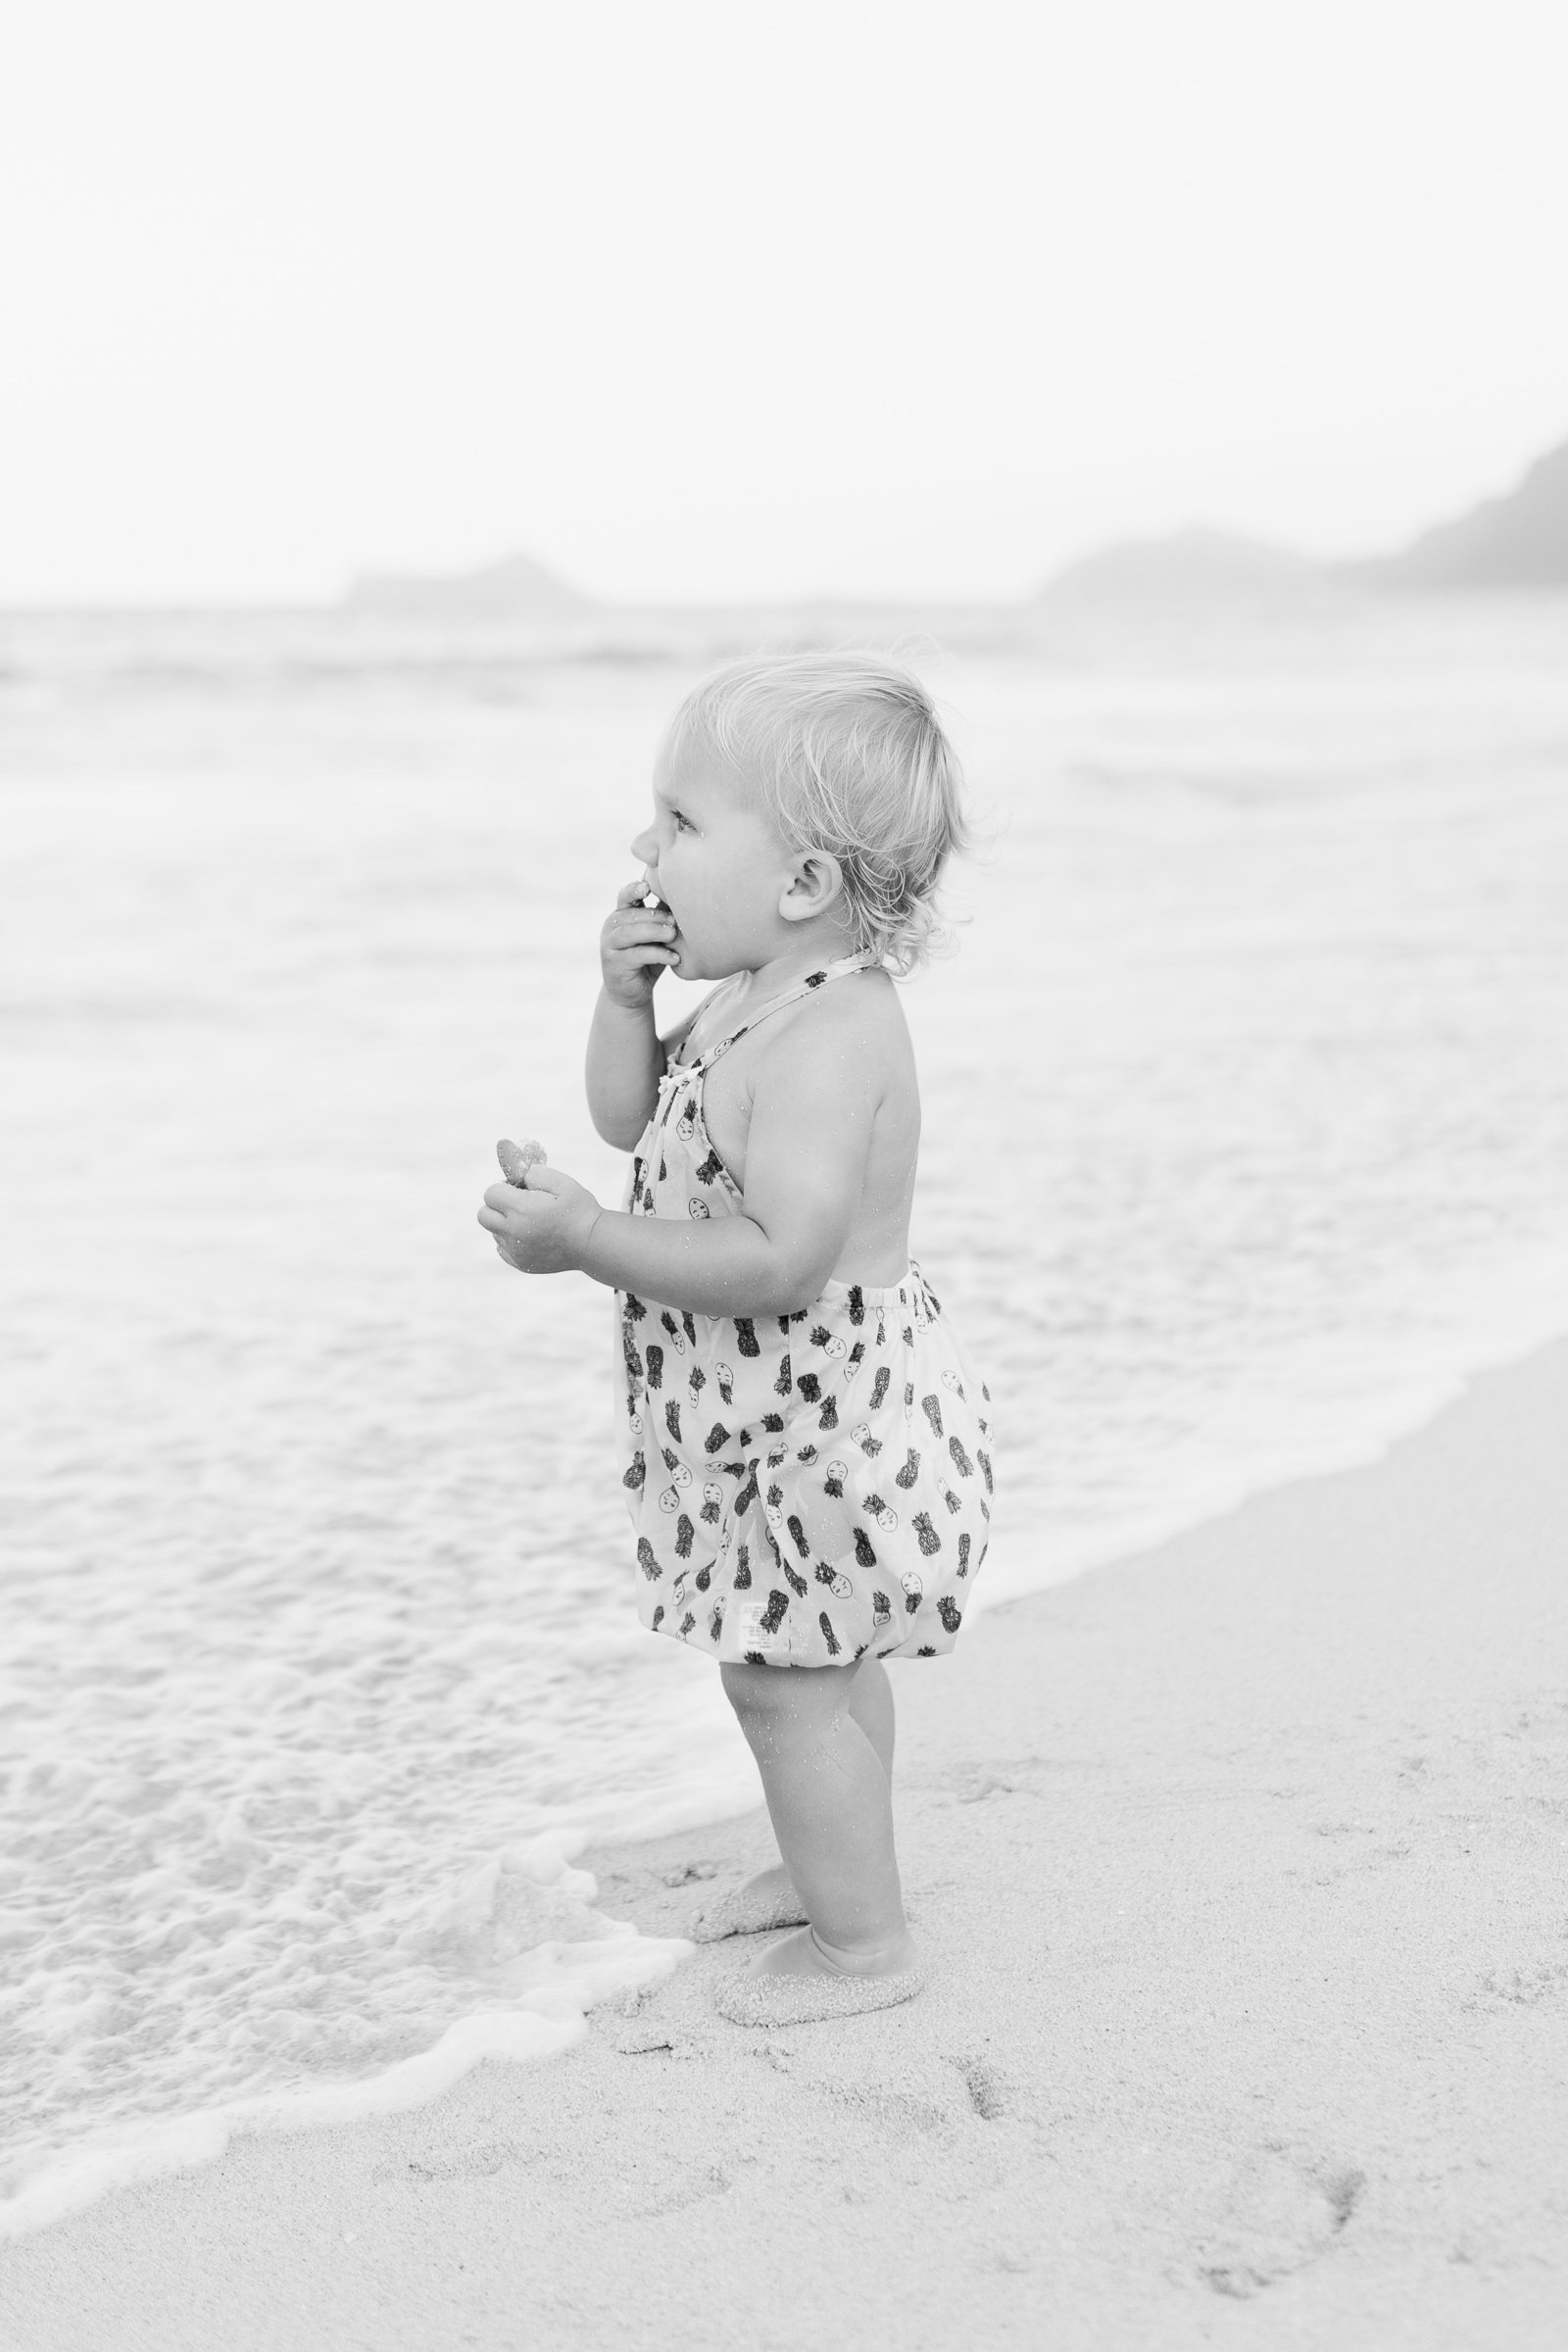 Oahu, Hawaii Lifestyle Photographer - Lifestyle Photography - Brooke Flanagan Photography - Black and White image of little girl on the beach